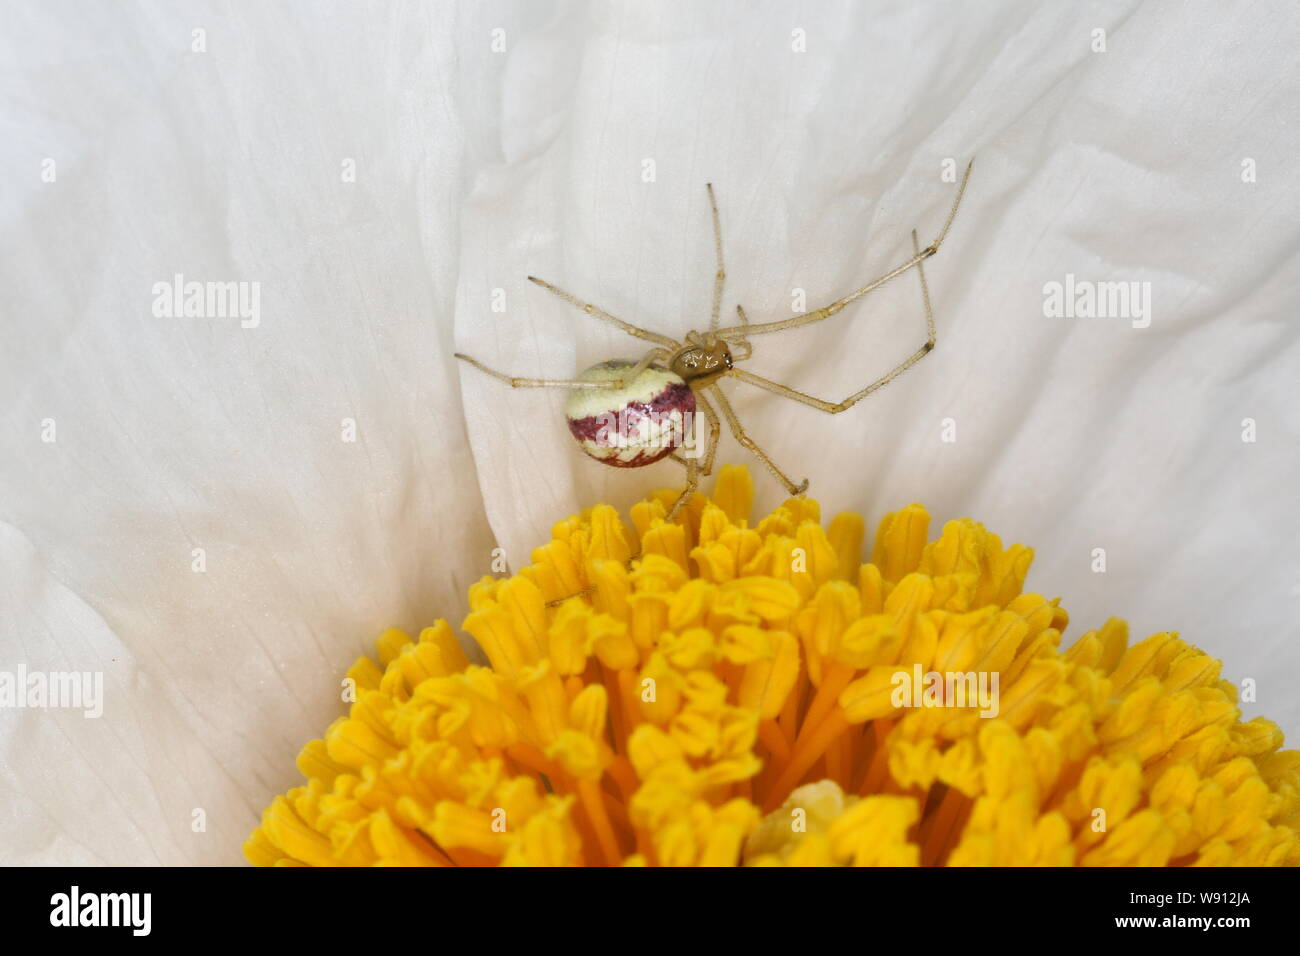 Candy-striped Spider - on Romneya Flower Enoplognatha ovata Essex, UK IN001144 Stock Photo